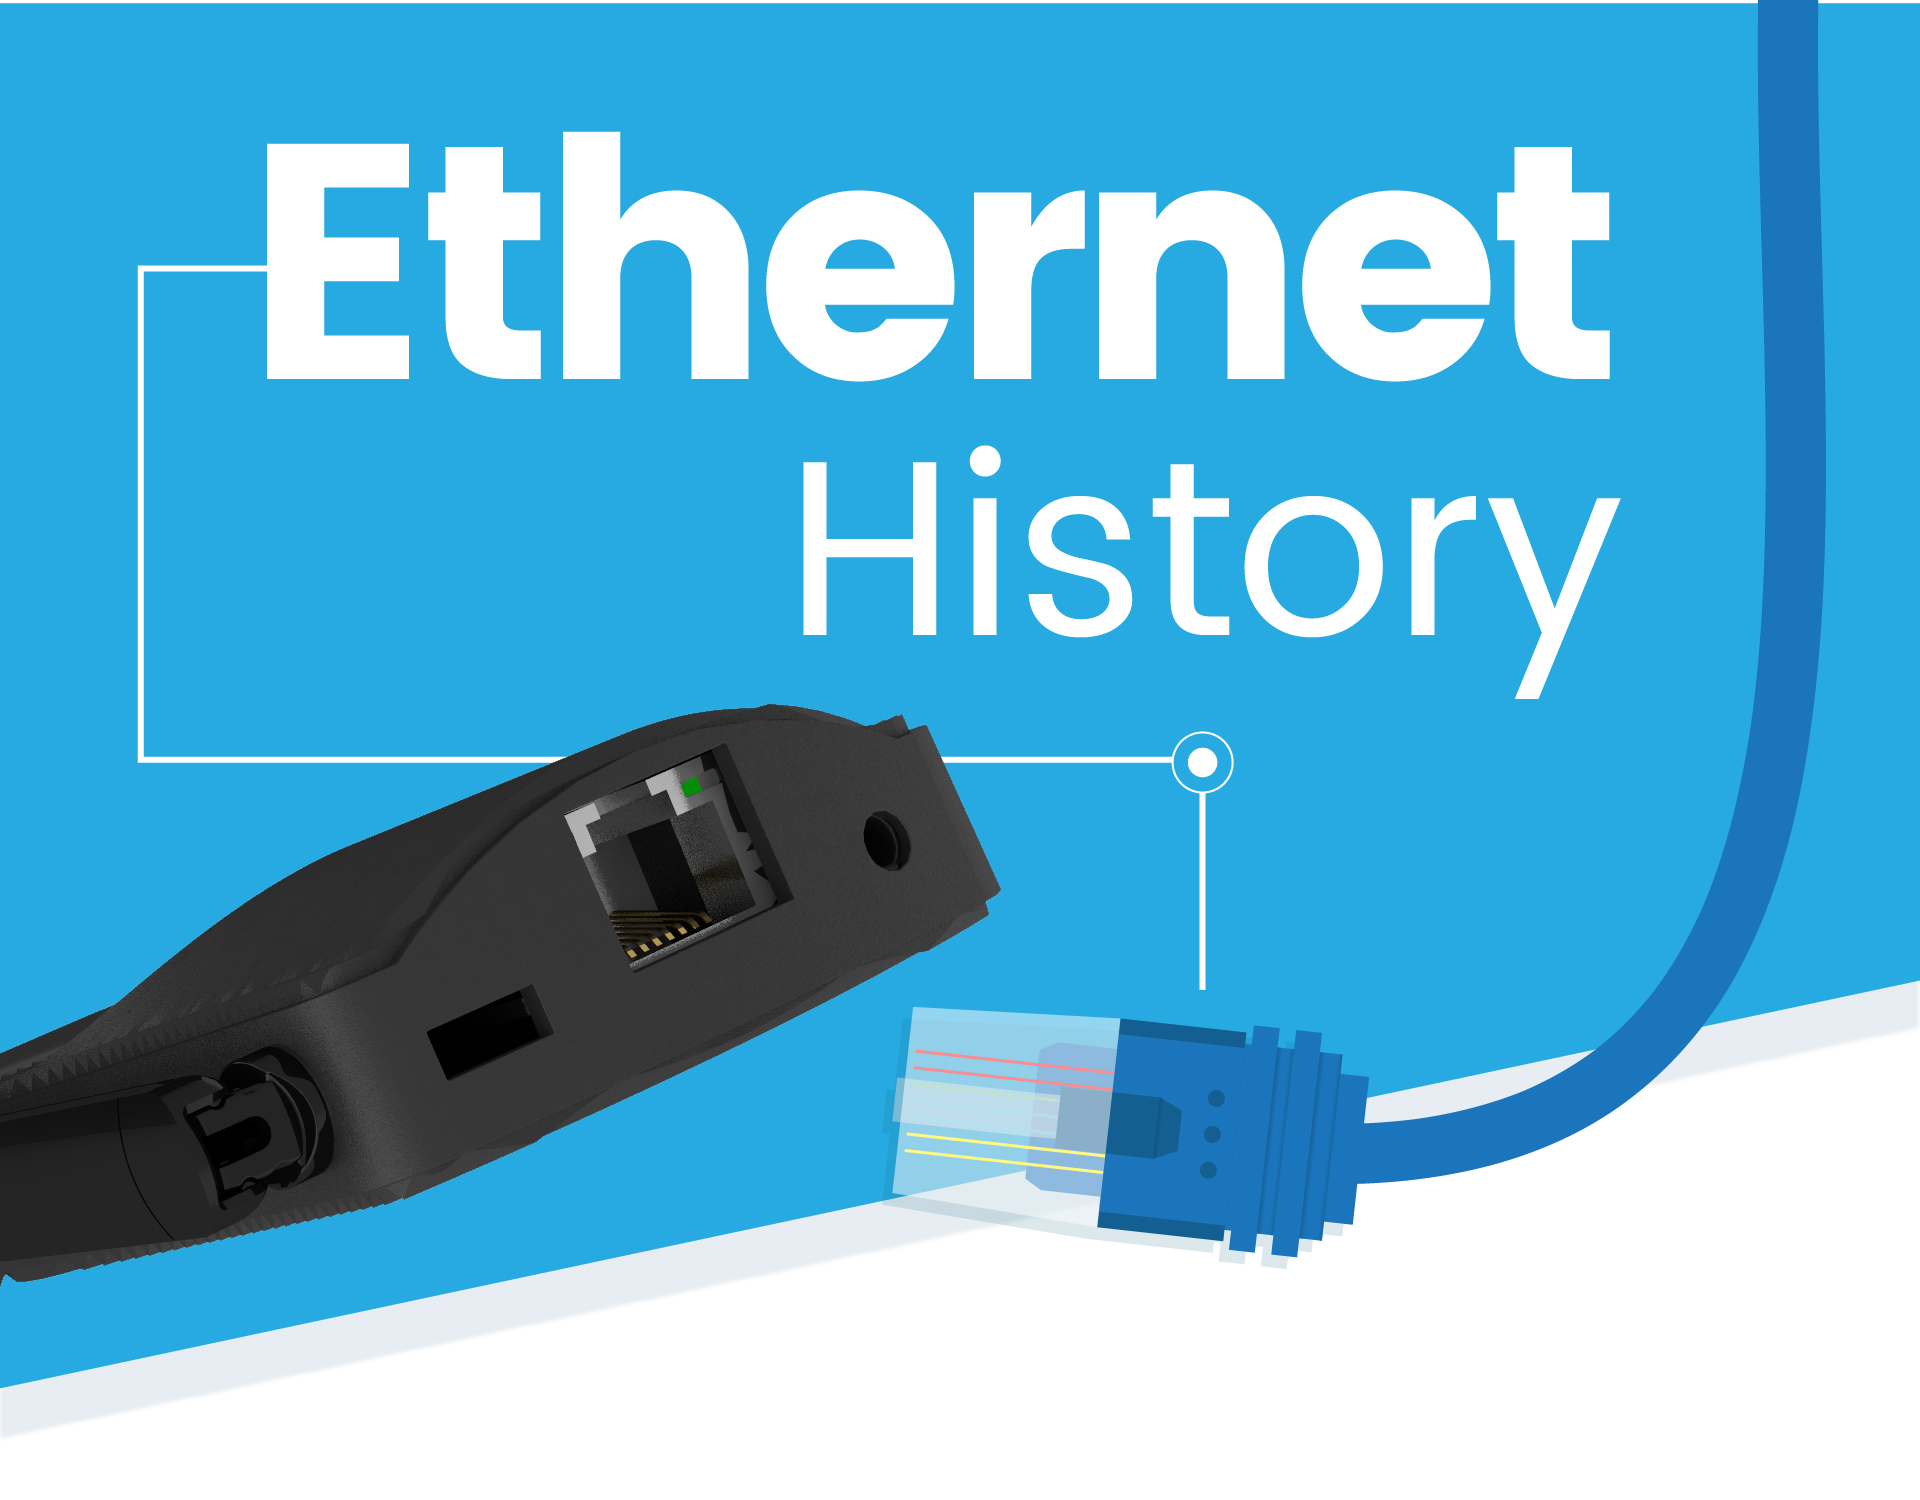 The Evolution of Portable Technology and The History of Ethernet